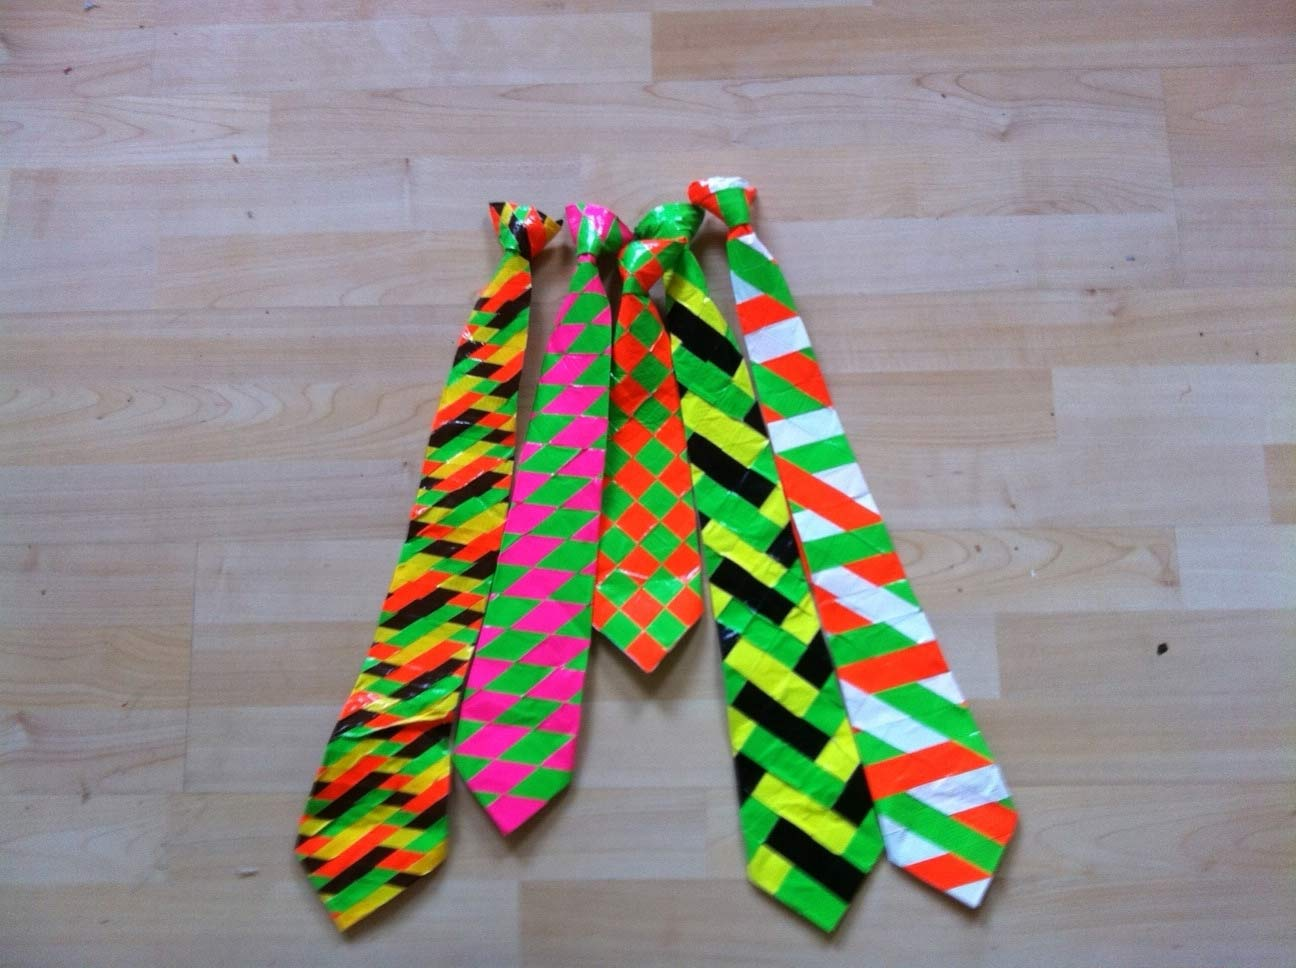 Duct Tape Crafts Ideas for DIY Home Decor, Fashion and Accessories | Duct Tape Tie | DIY Projects for Teens #teencrafts #kidscrafts #ducttape #cheapcrafts /